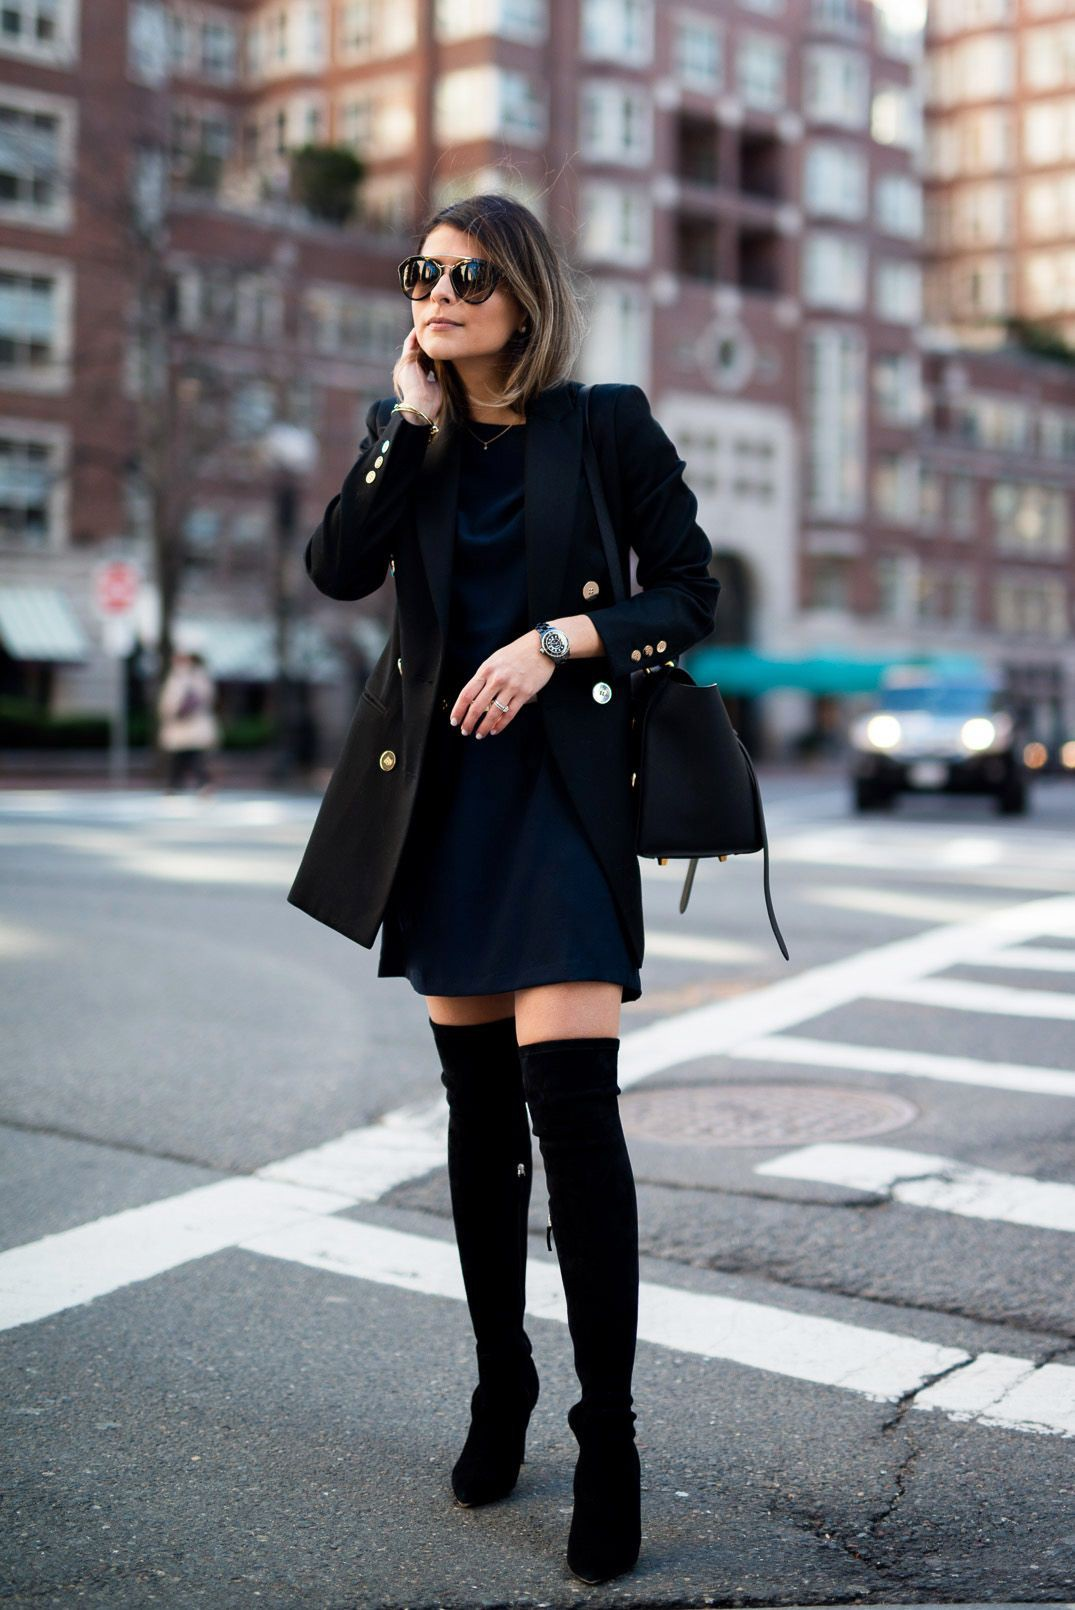 Colour dress winter outfits stars, winter clothing, street fashion